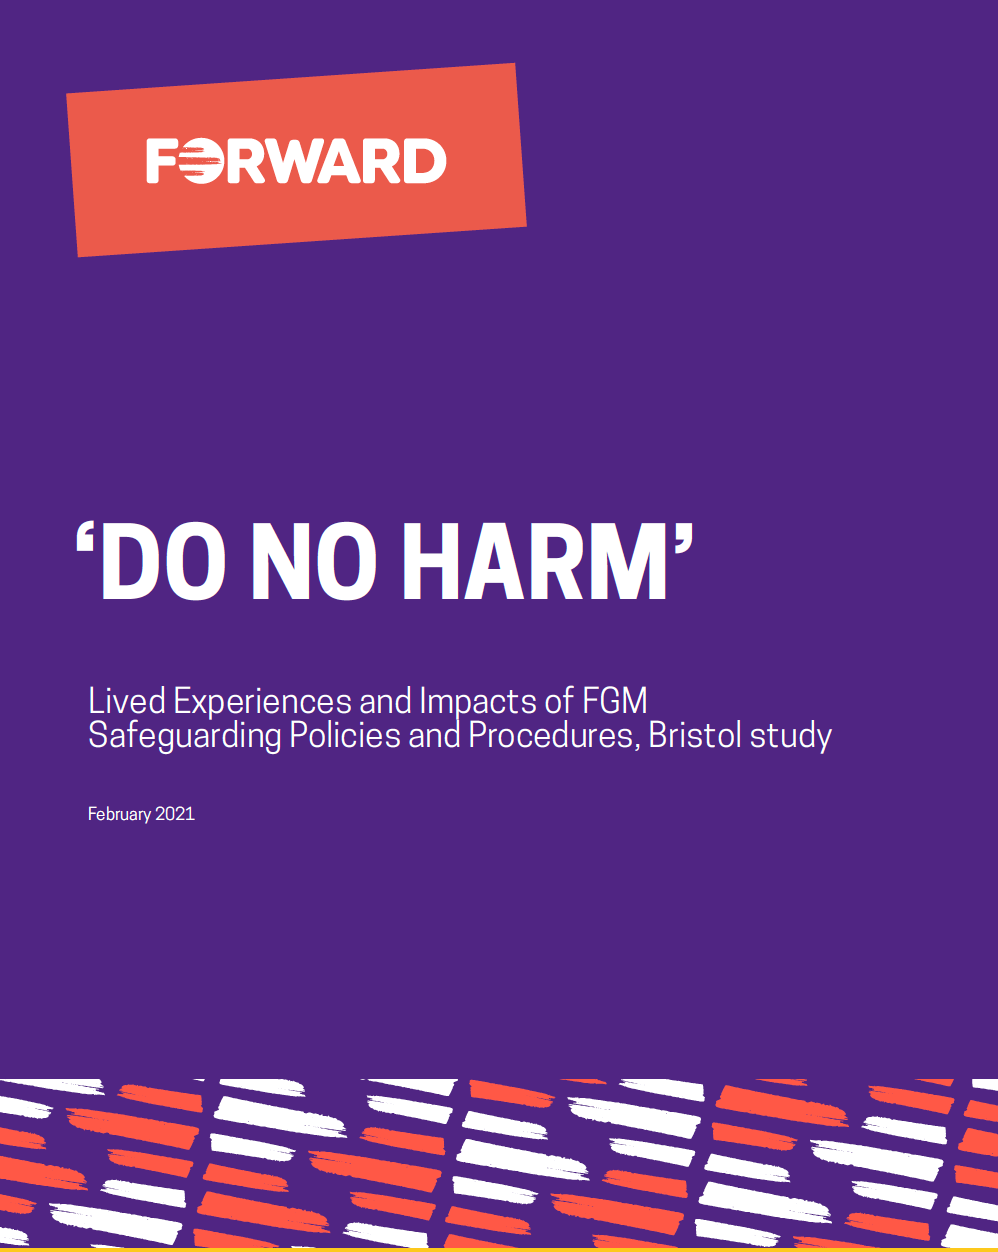 Forward publication image